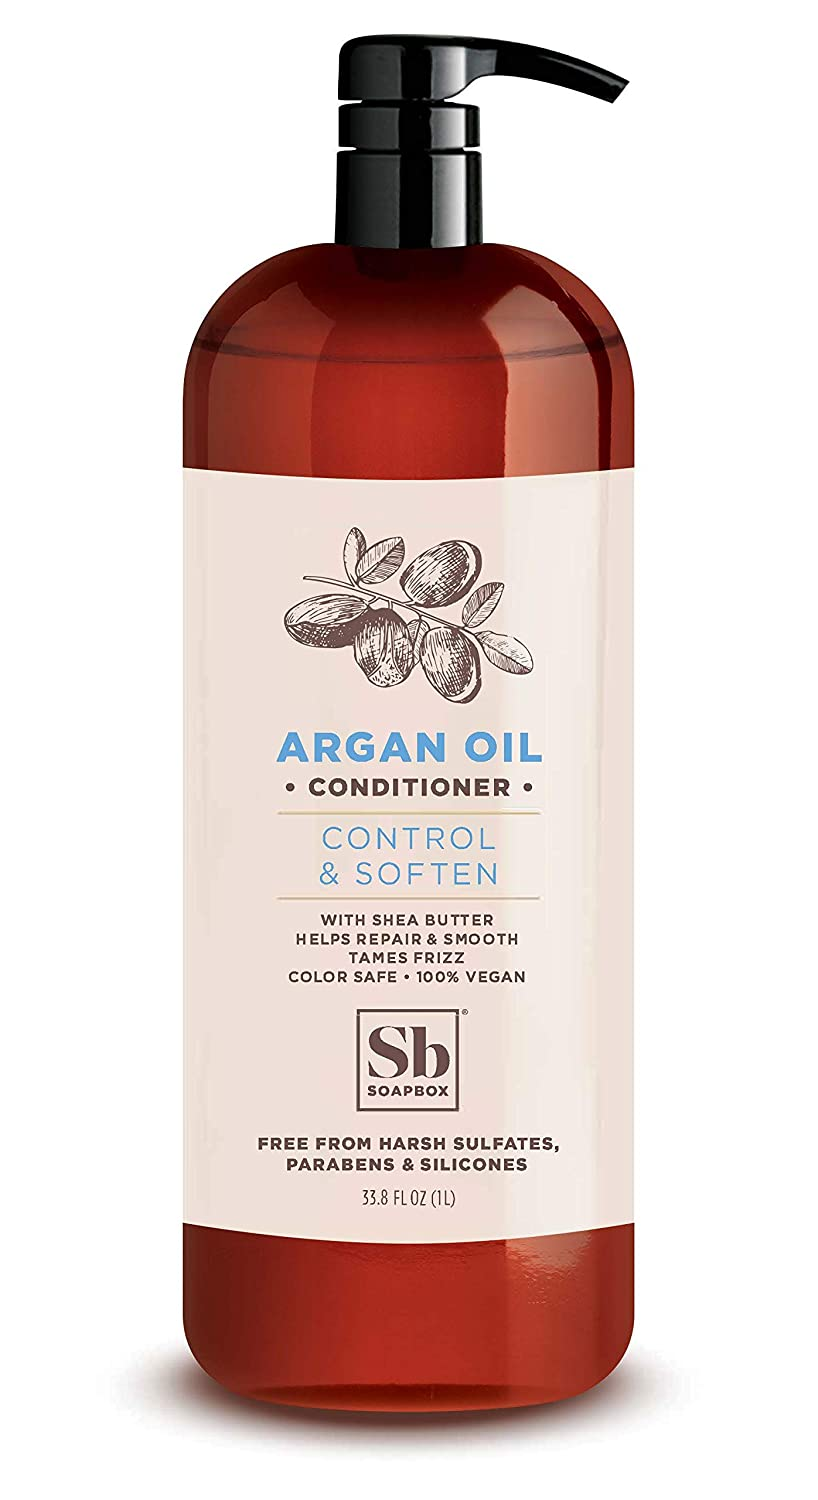 Soapbox Argan Oil Conditioner, Sulfate Free, Paraben Free, Silicone Free, Color Safe, and Vegan Hair Conditioner (33.8oz, Pack of 1)